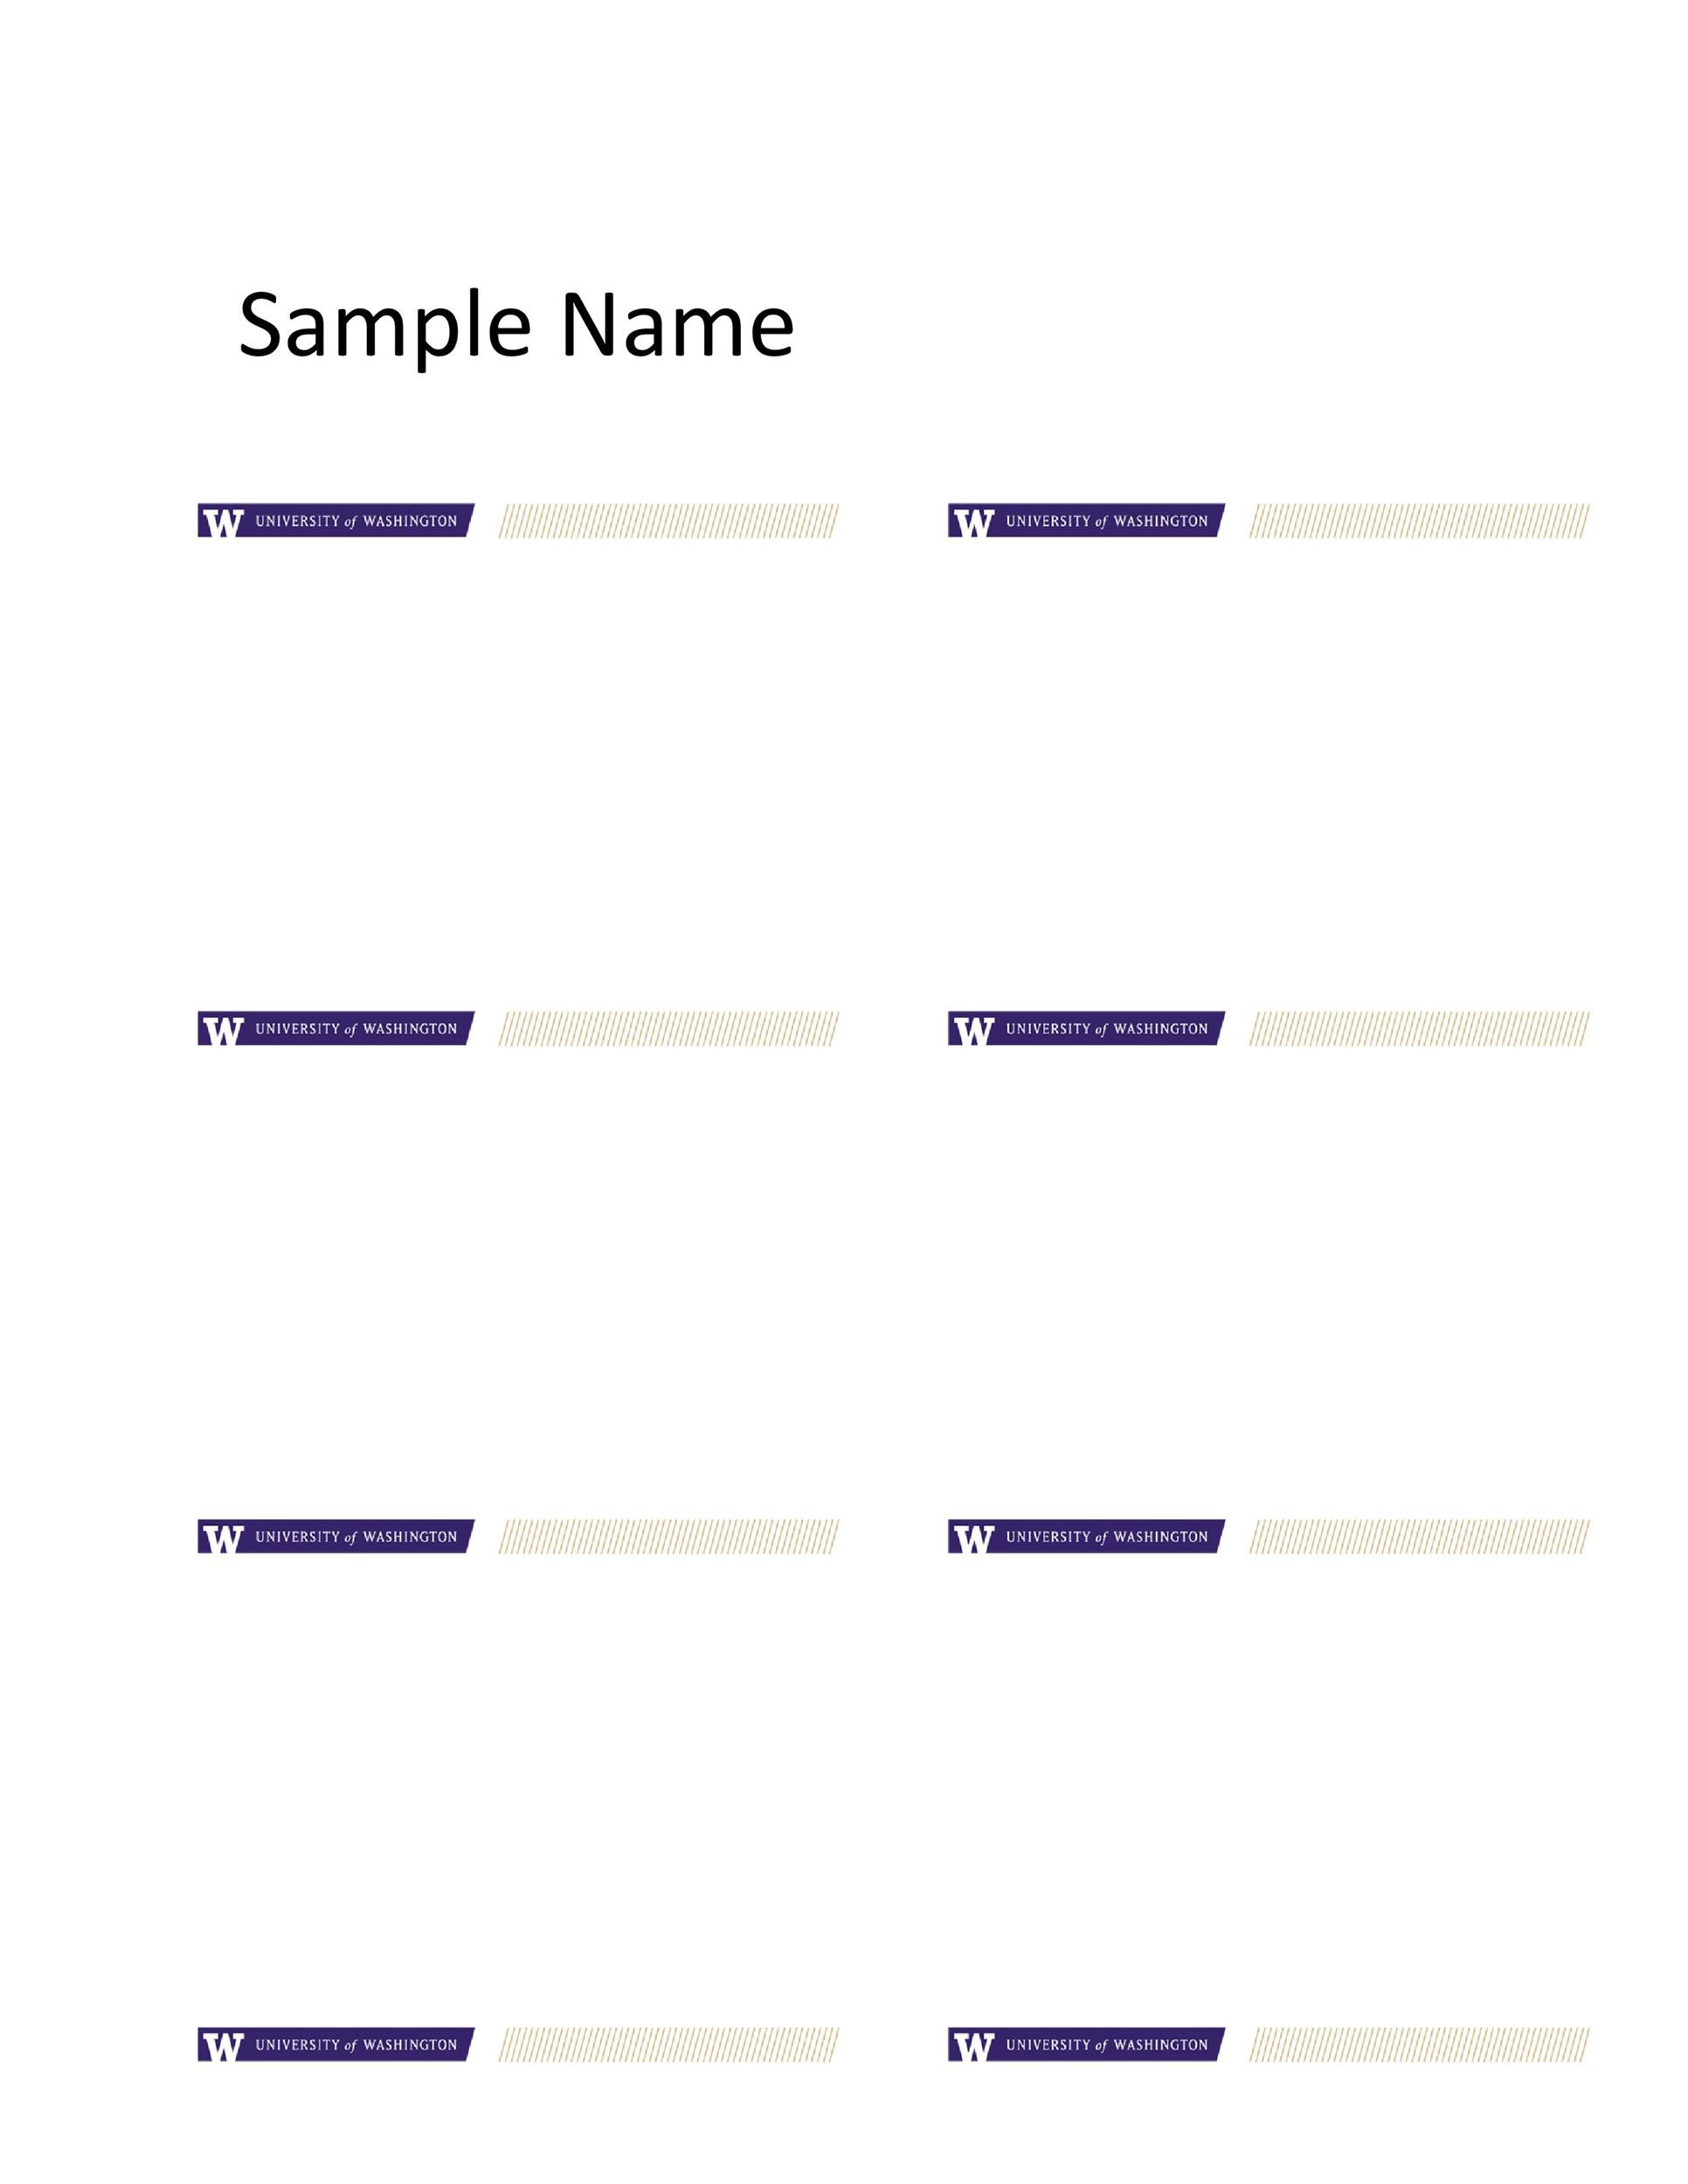 47 Free Name Tag + Badge Templates - Template Lab